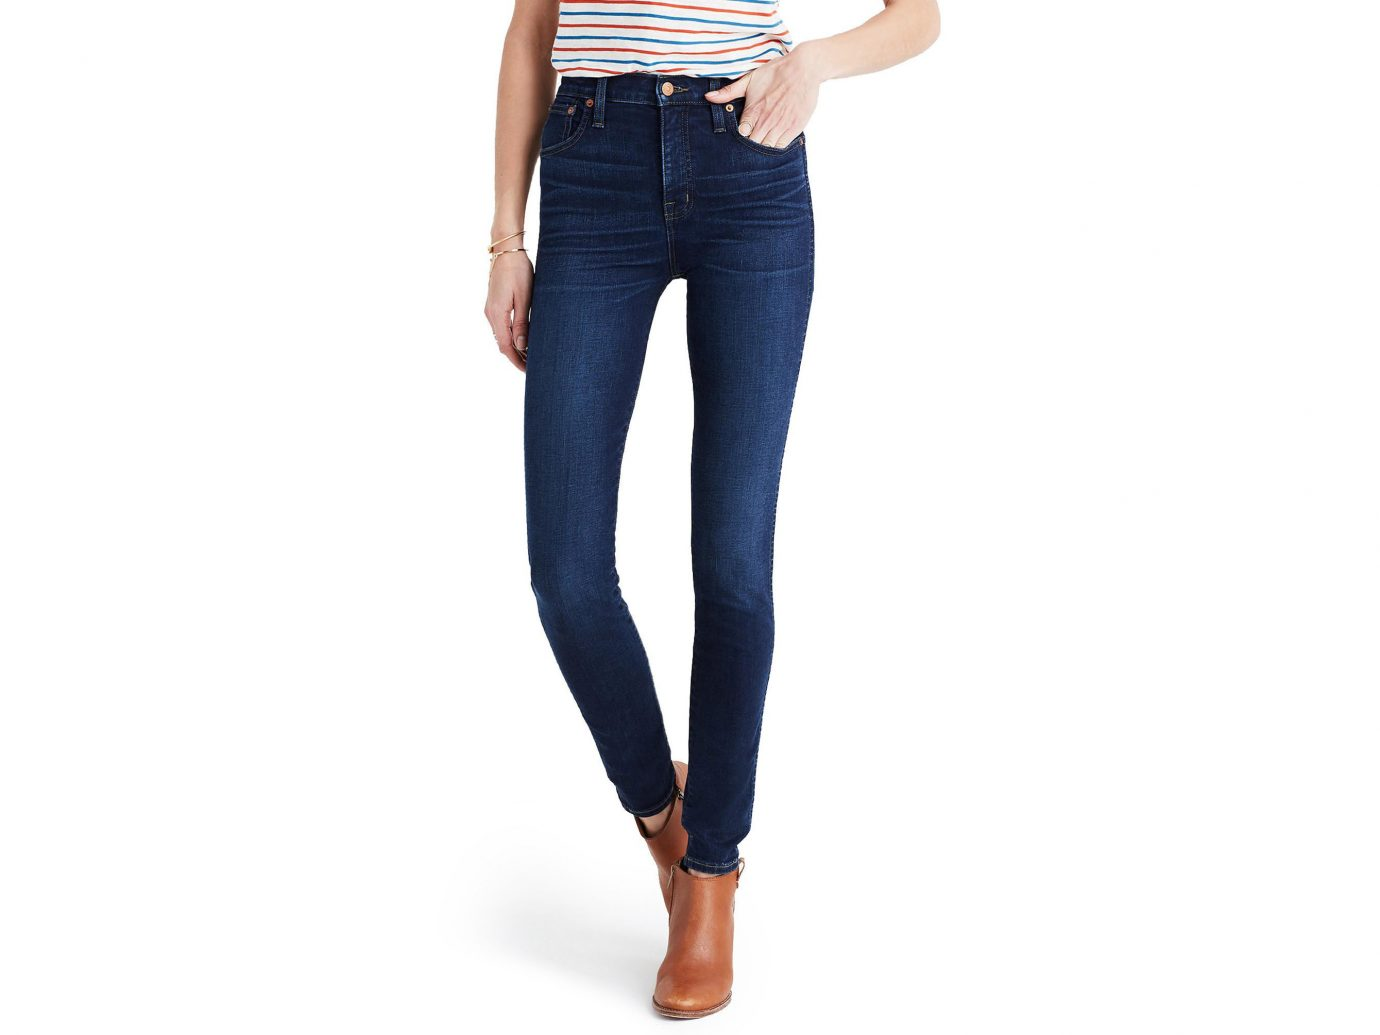 France Style + Design Travel Shop clothing jeans denim waist trouser electric blue joint trousers leggings abdomen trunk pocket